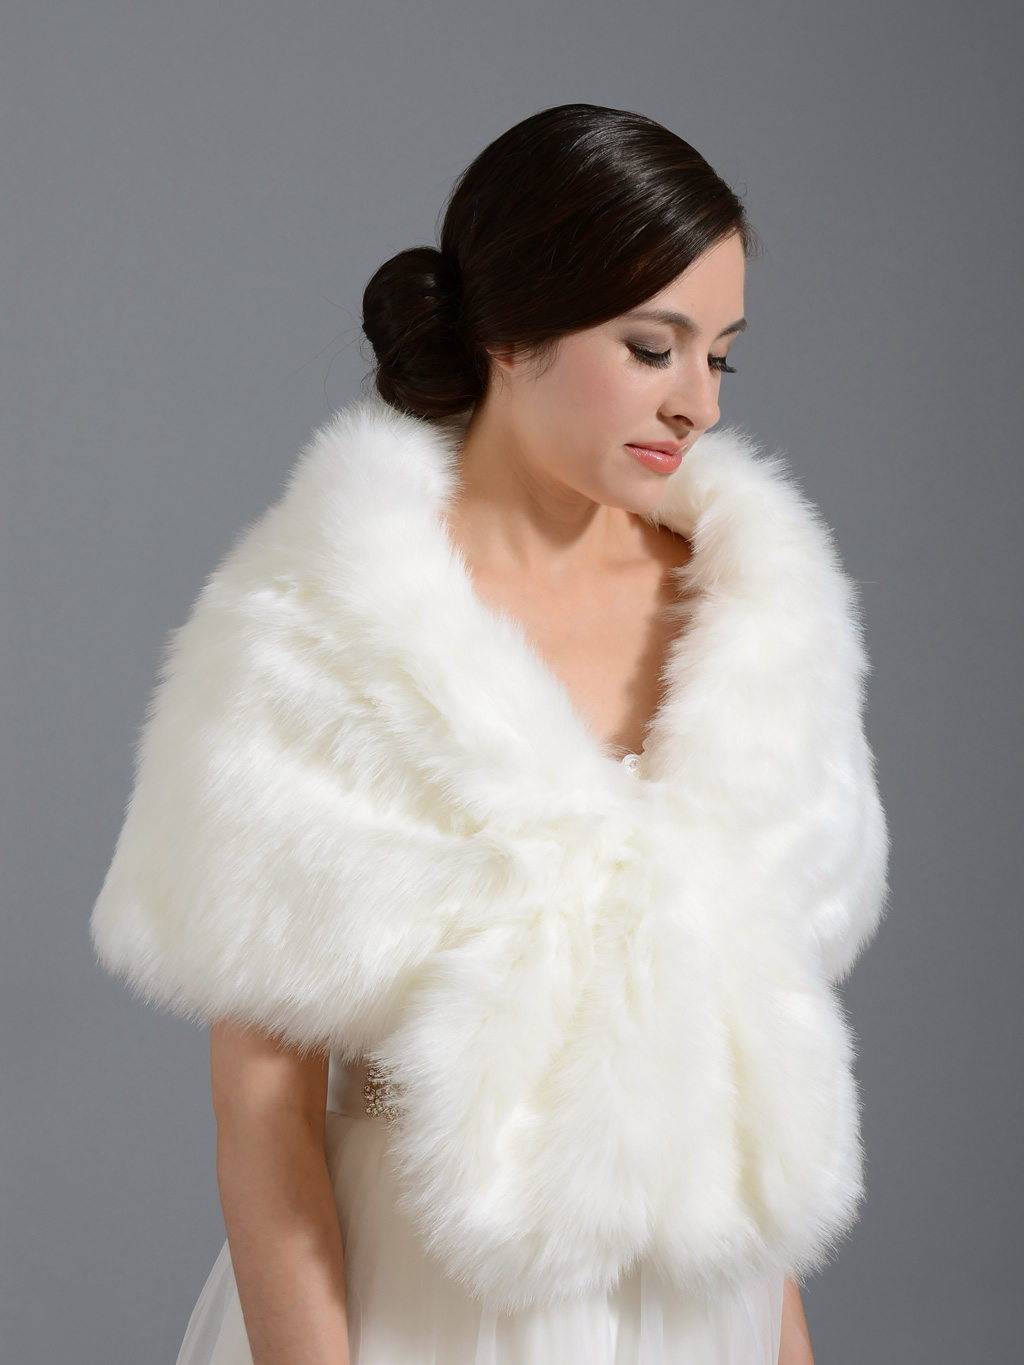 How to choose fall wedding dresses and accessories the for Fur shrug for wedding dress